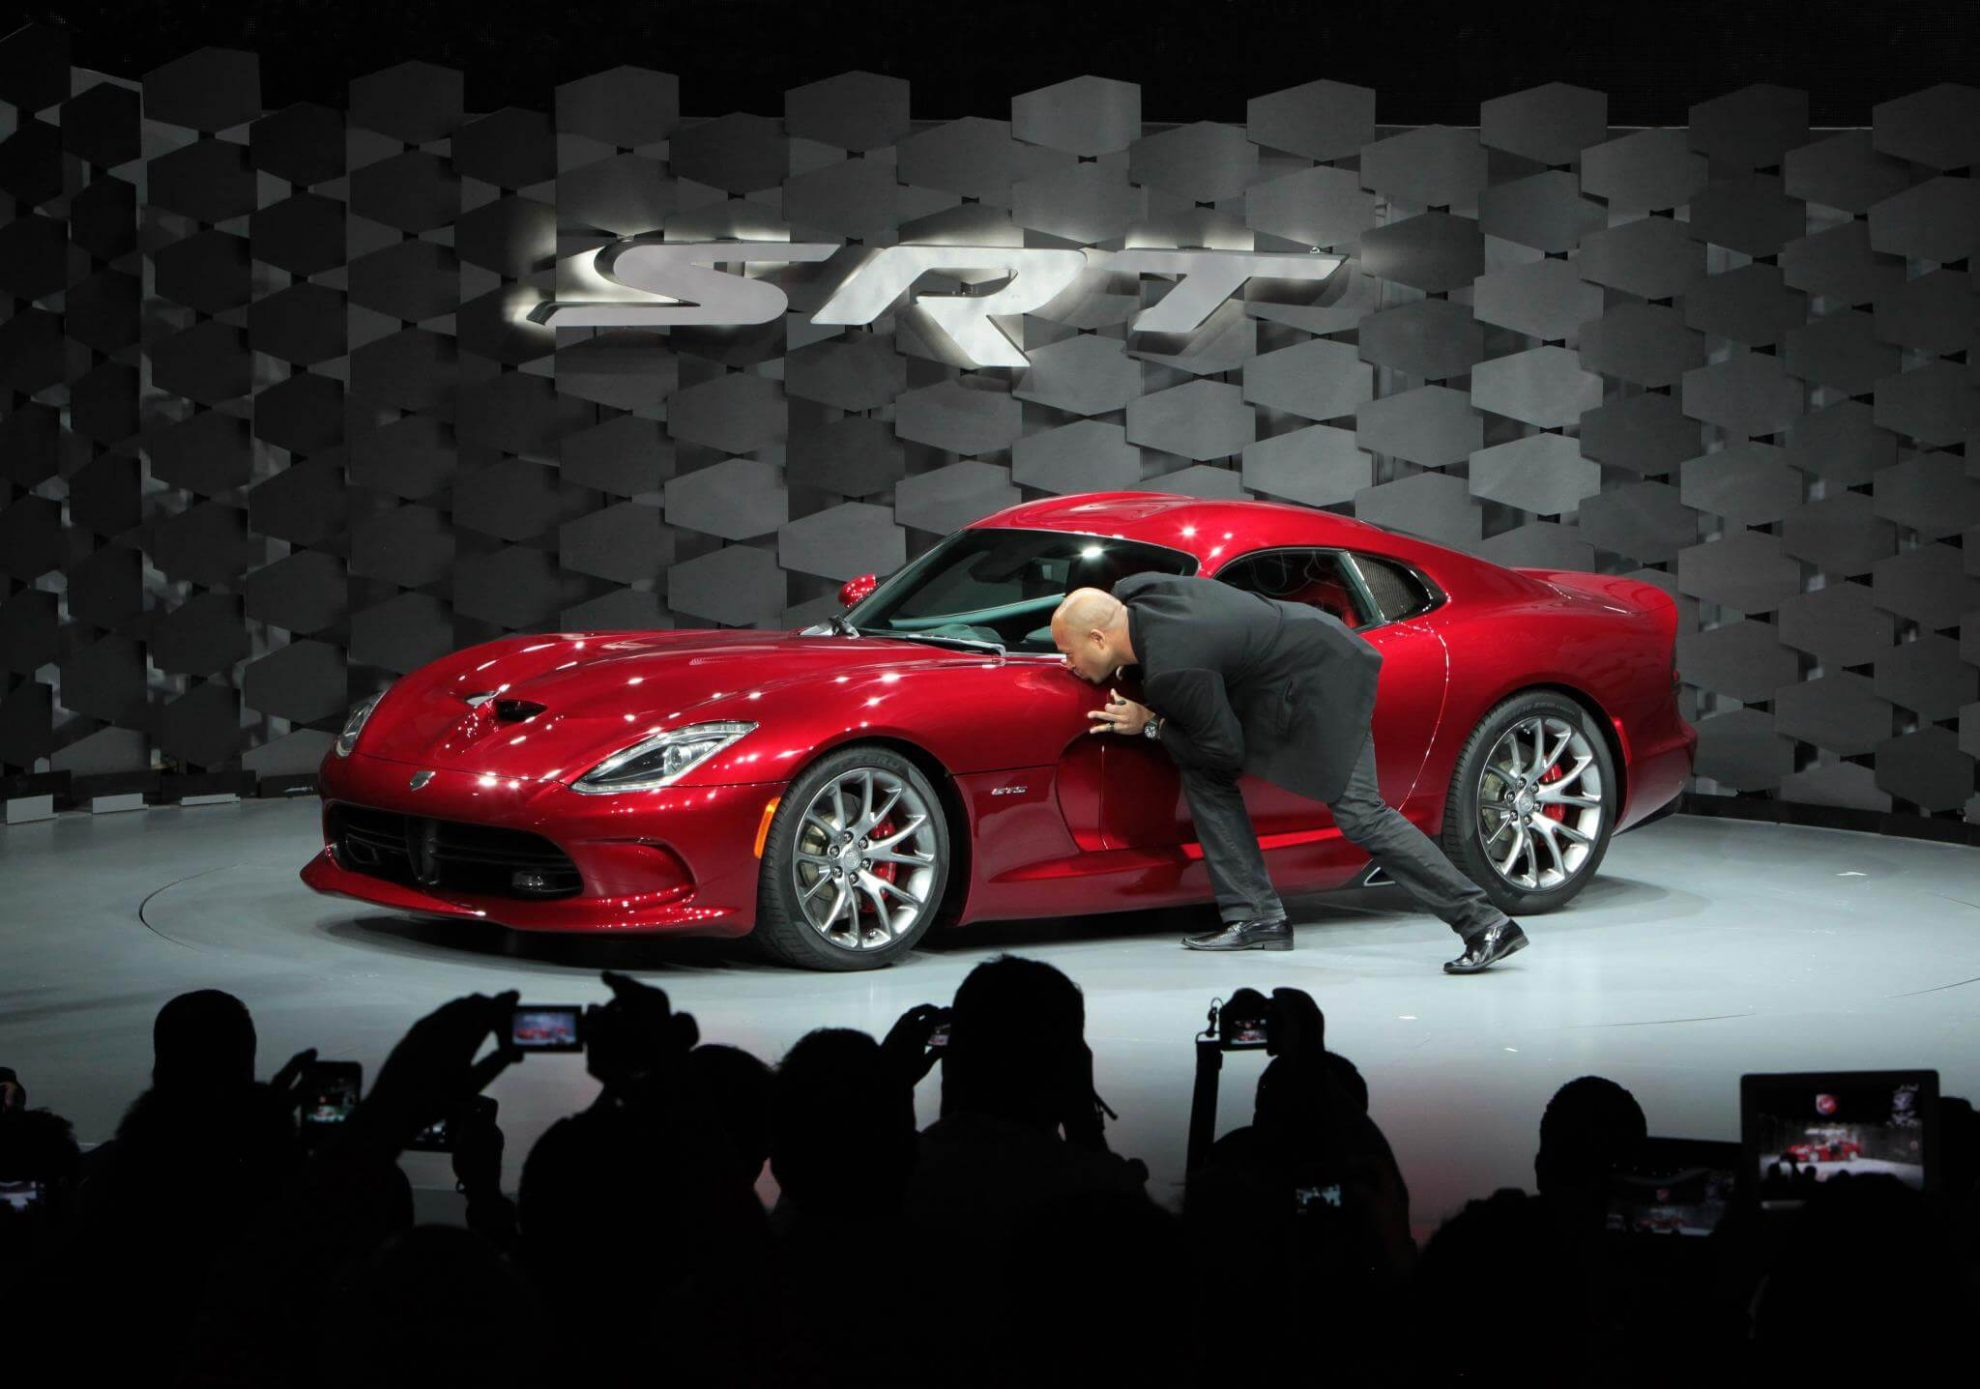 Abstract The Art of Design por Netflix o designer automotivo Ralph Gilles Dodge Viper